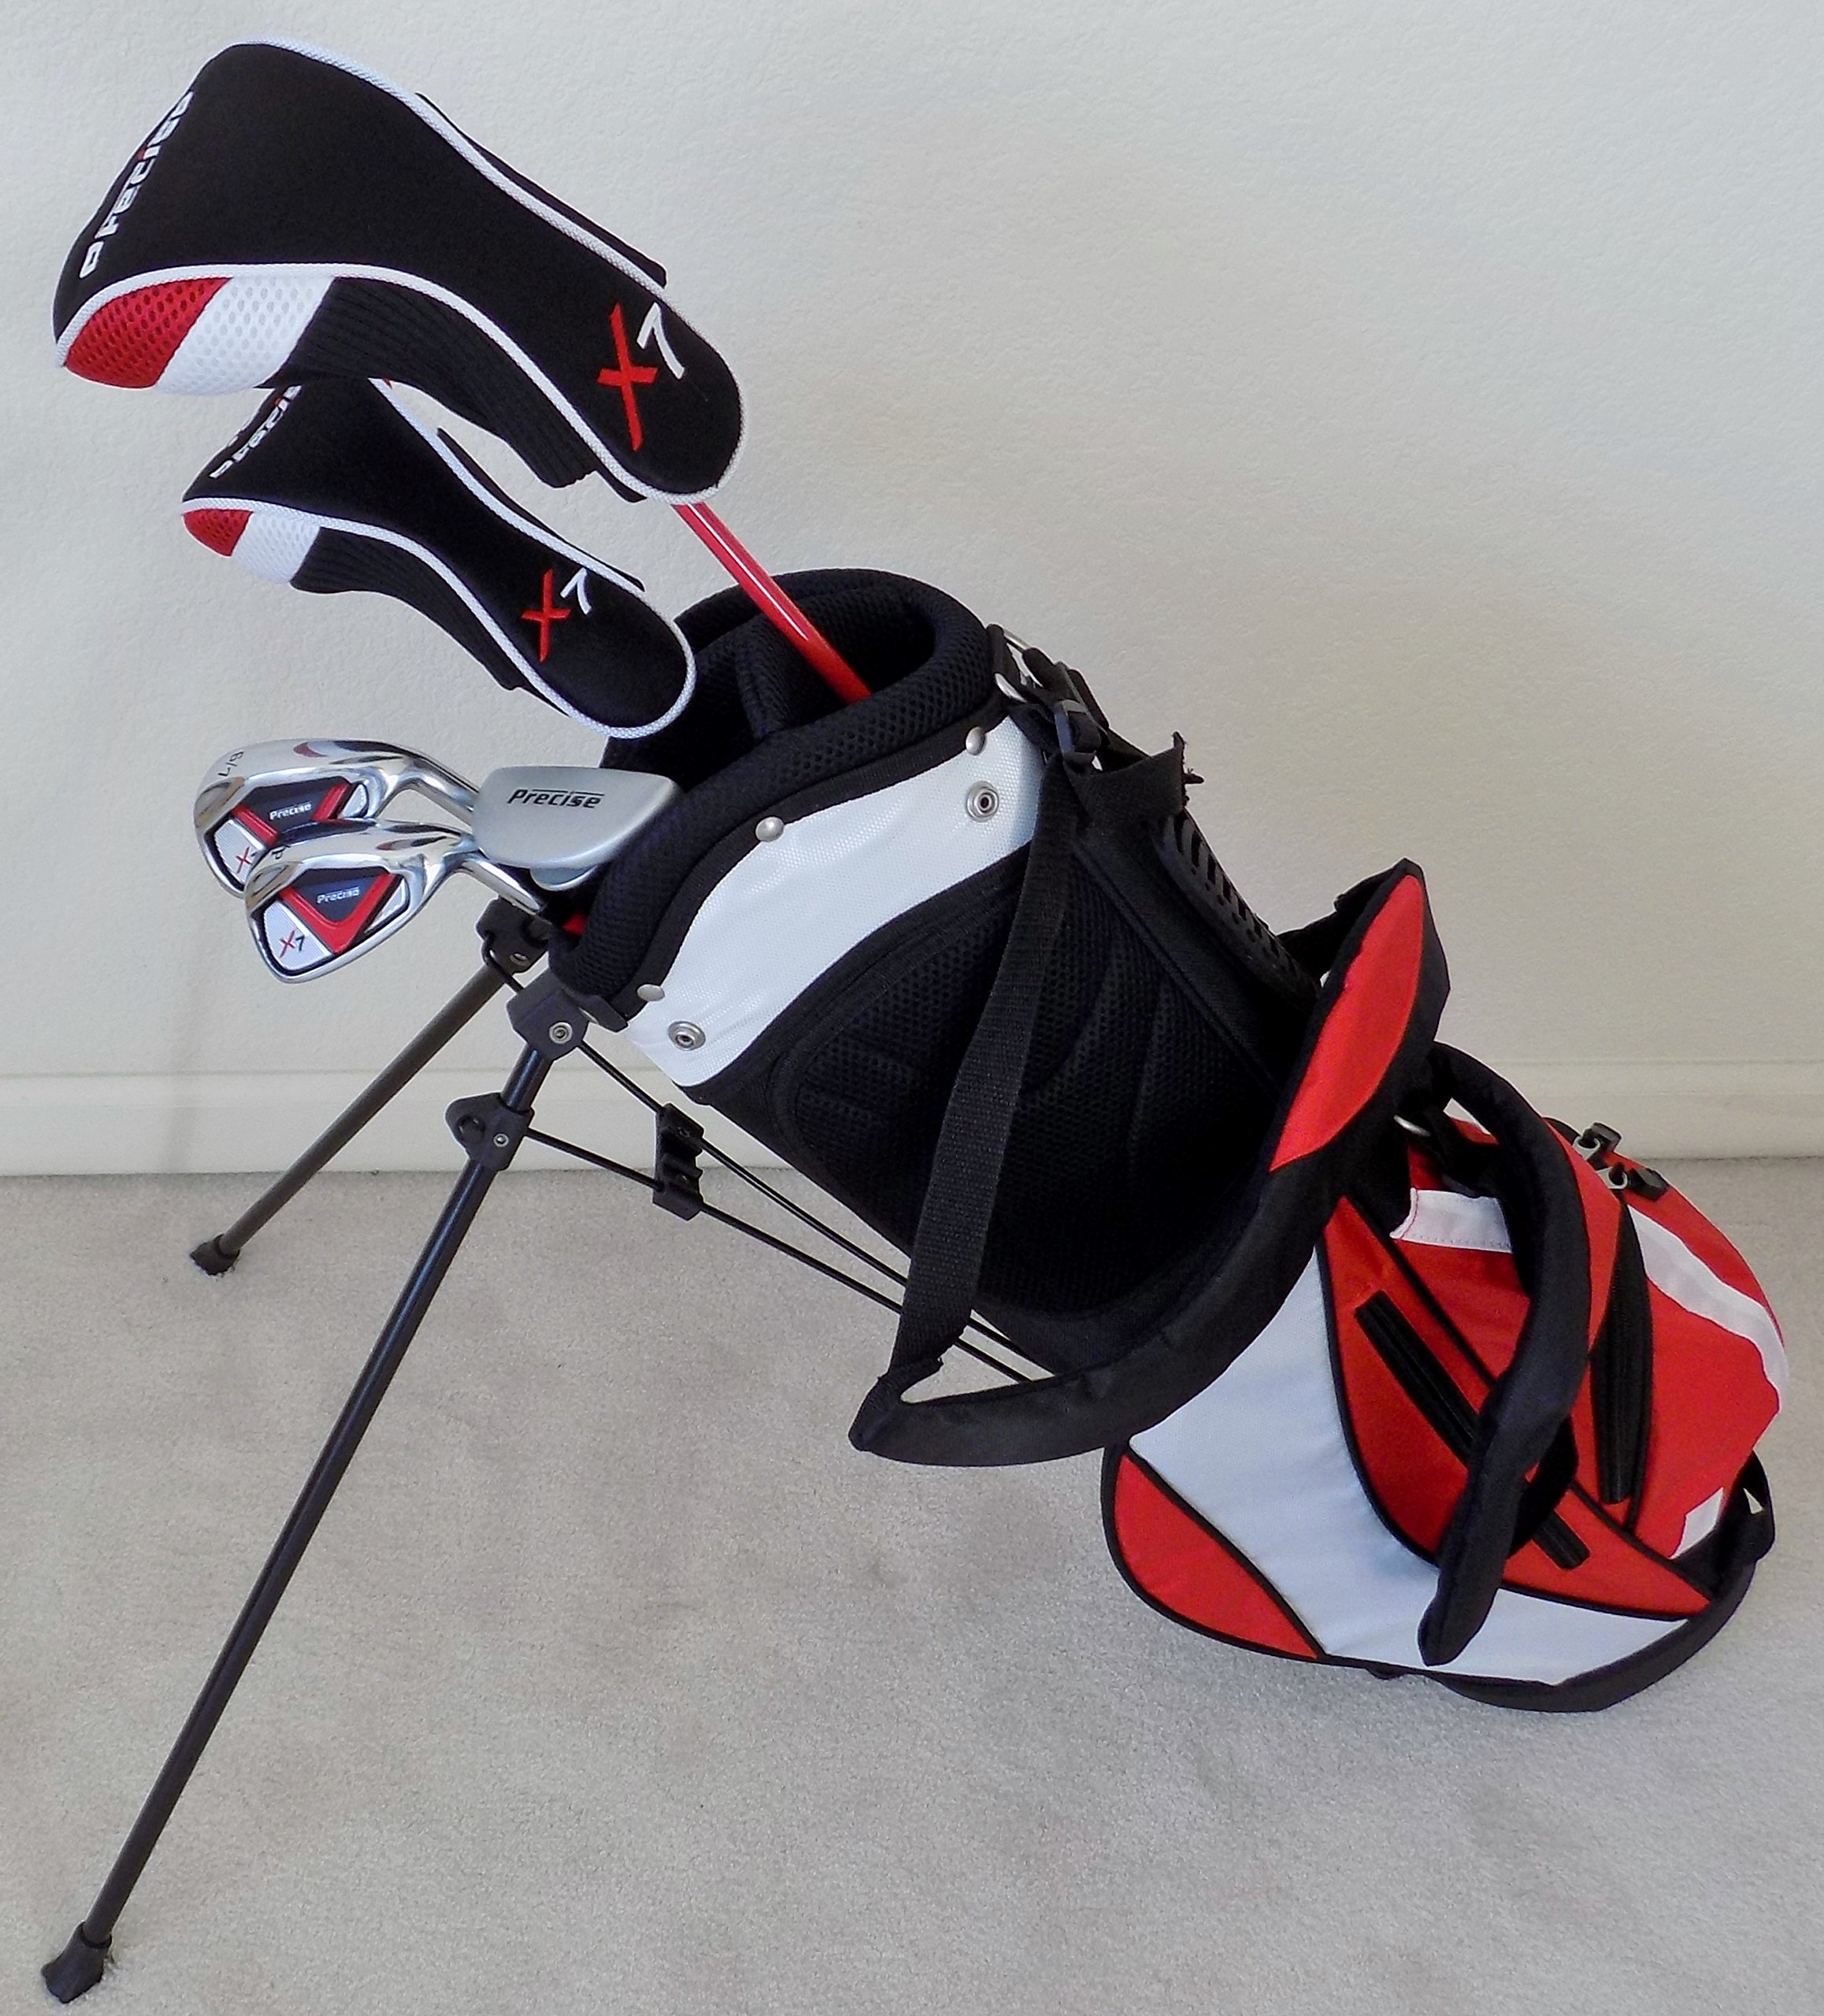 Boys Ages 5-8 Junior Golf Club Set Complete Driver, Hybrid, Irons, Putter, Stand Bag for Kids Red Color Professional Tour Jr.